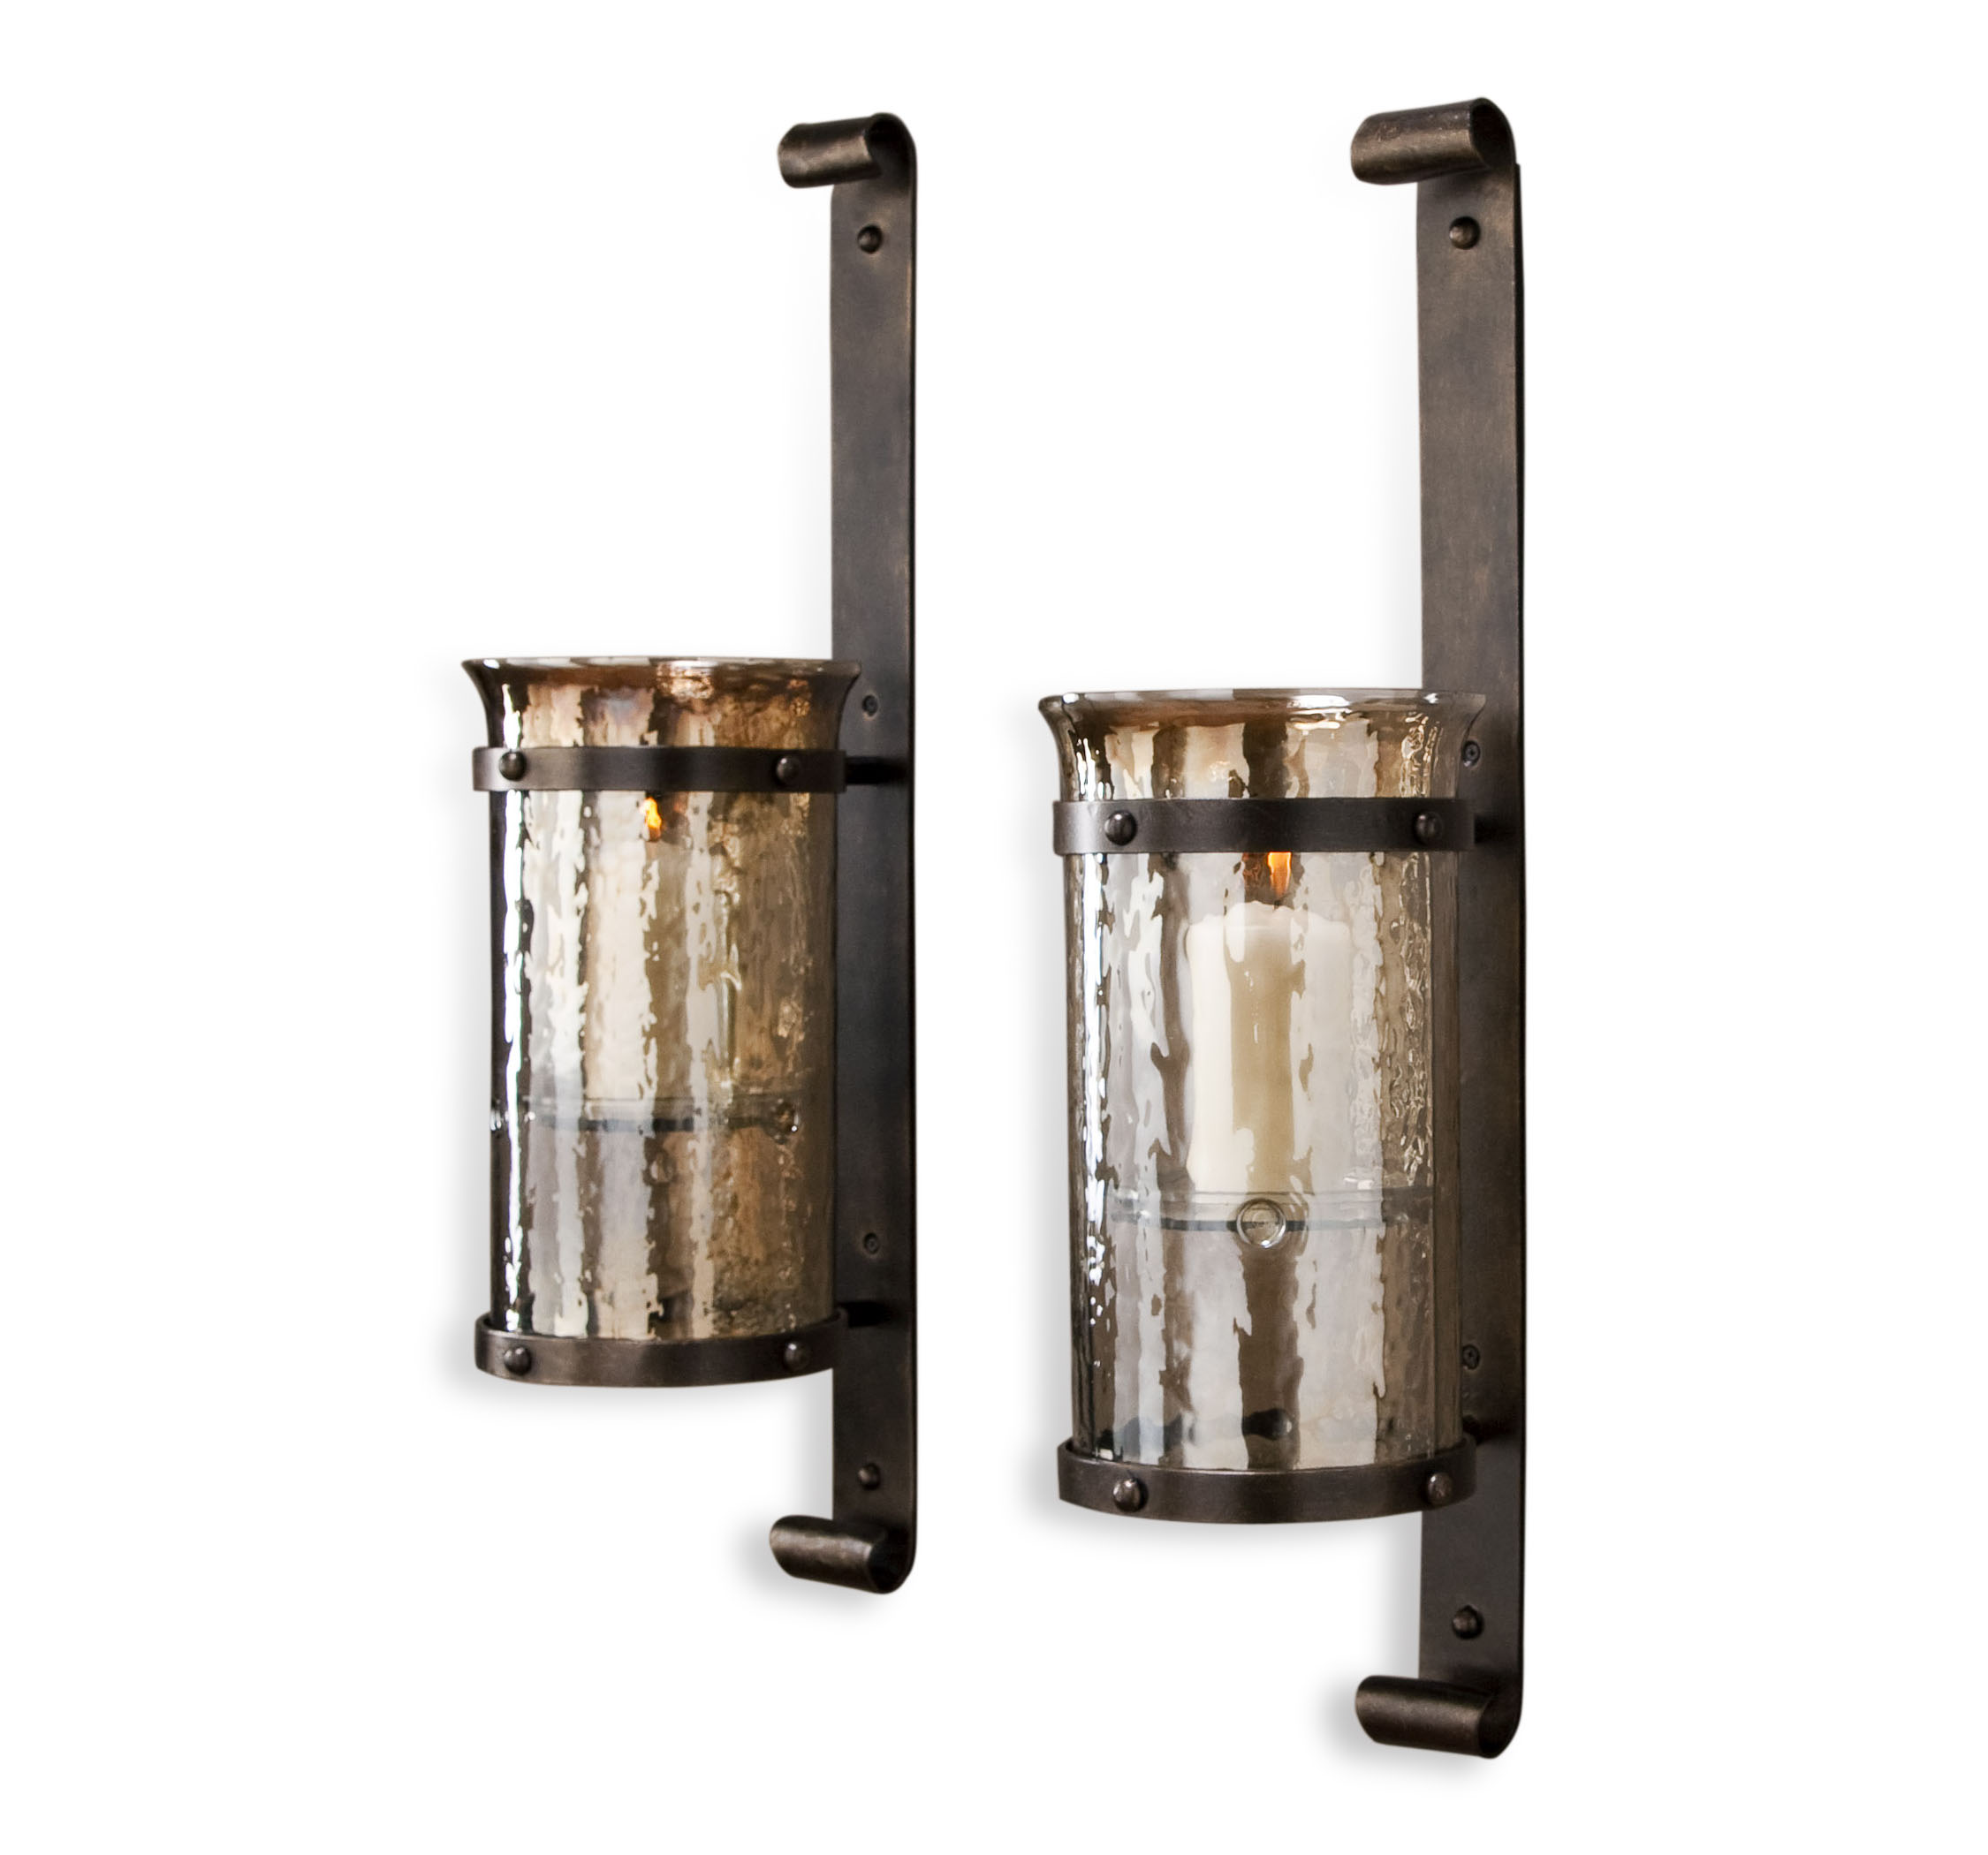 Mathis Rustic Wall Hurricane Sconce - Pair on Rustic Wall Sconces id=42887